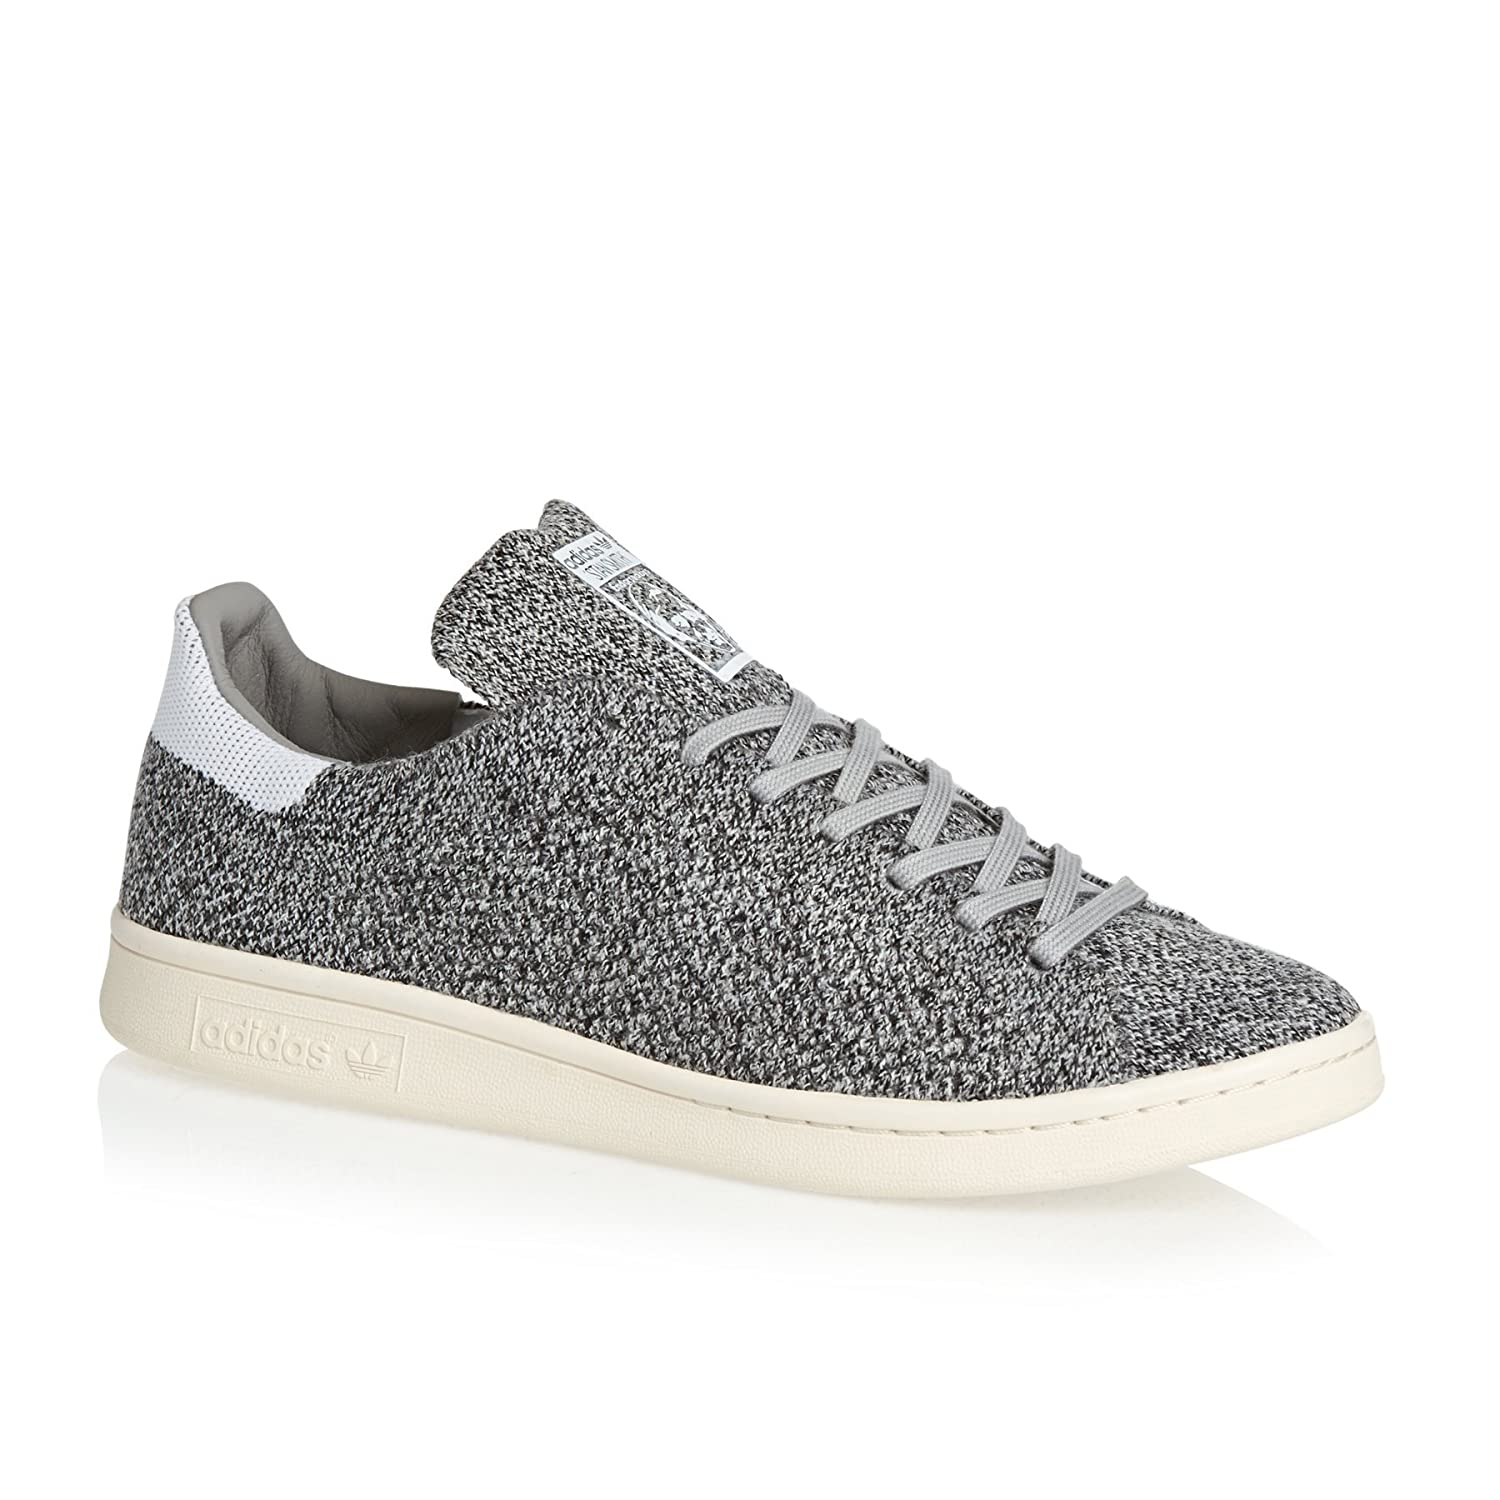 adidas Men's Originals Stan Smith Primeknit Trainers in Grey